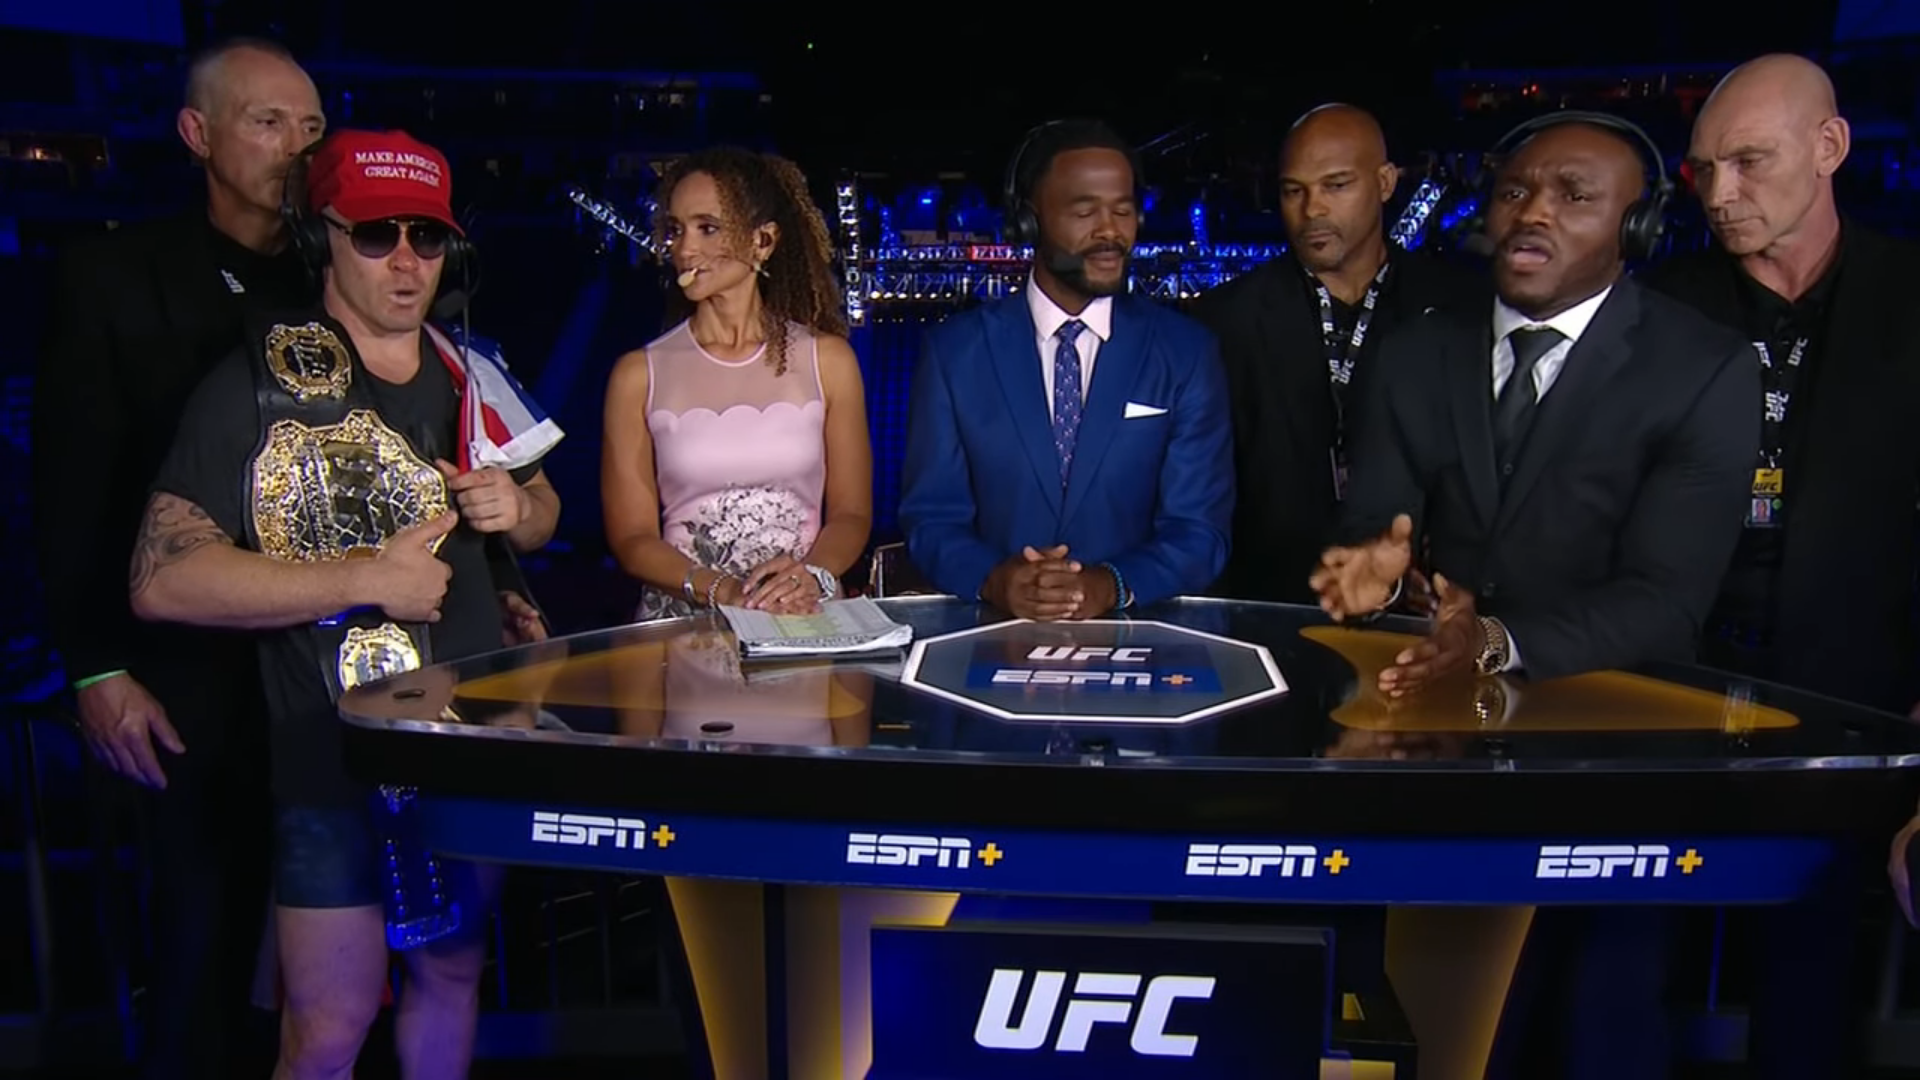 Watch: Colby Covington and Kamaru Usman have to be restrained at the ESPN desk - Colby